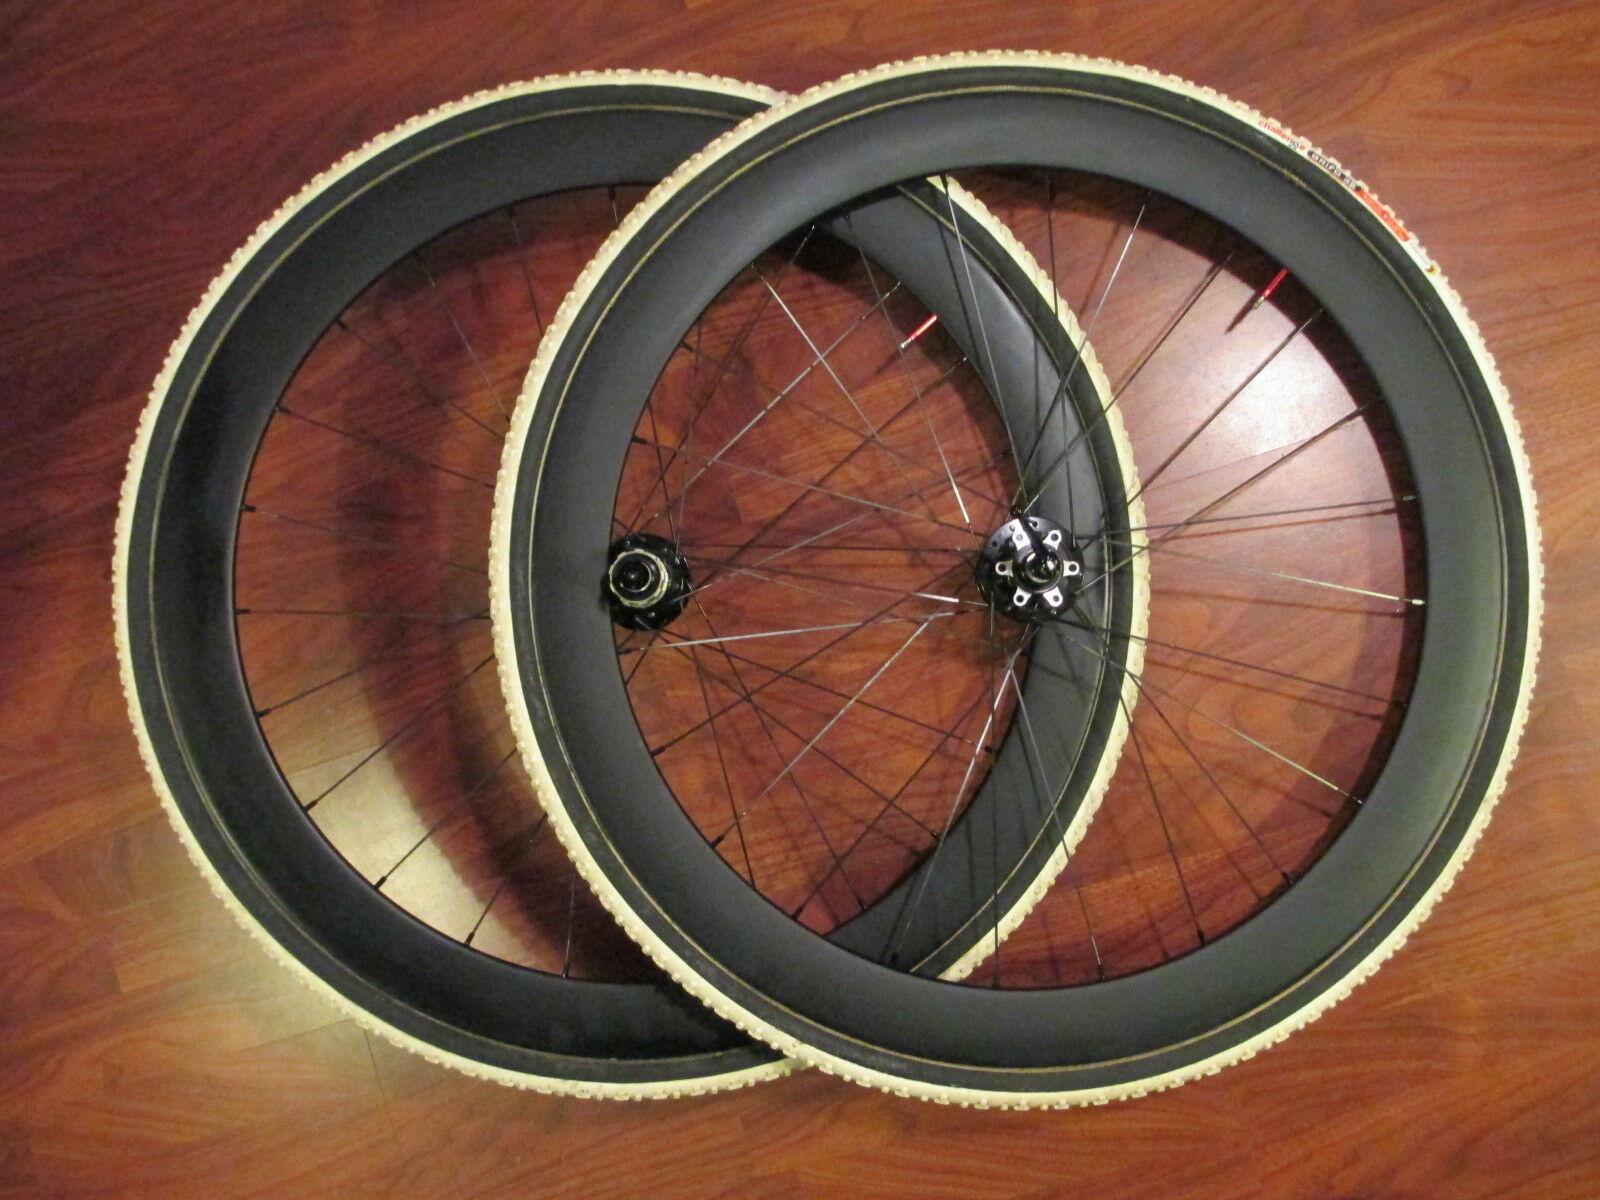 50MM CARBON TUBULARS DISC 11 SPEED CYCLOCROSS WHEEL SET CHALLANGE  GRIFO 32 TIRES  top brands sell cheap